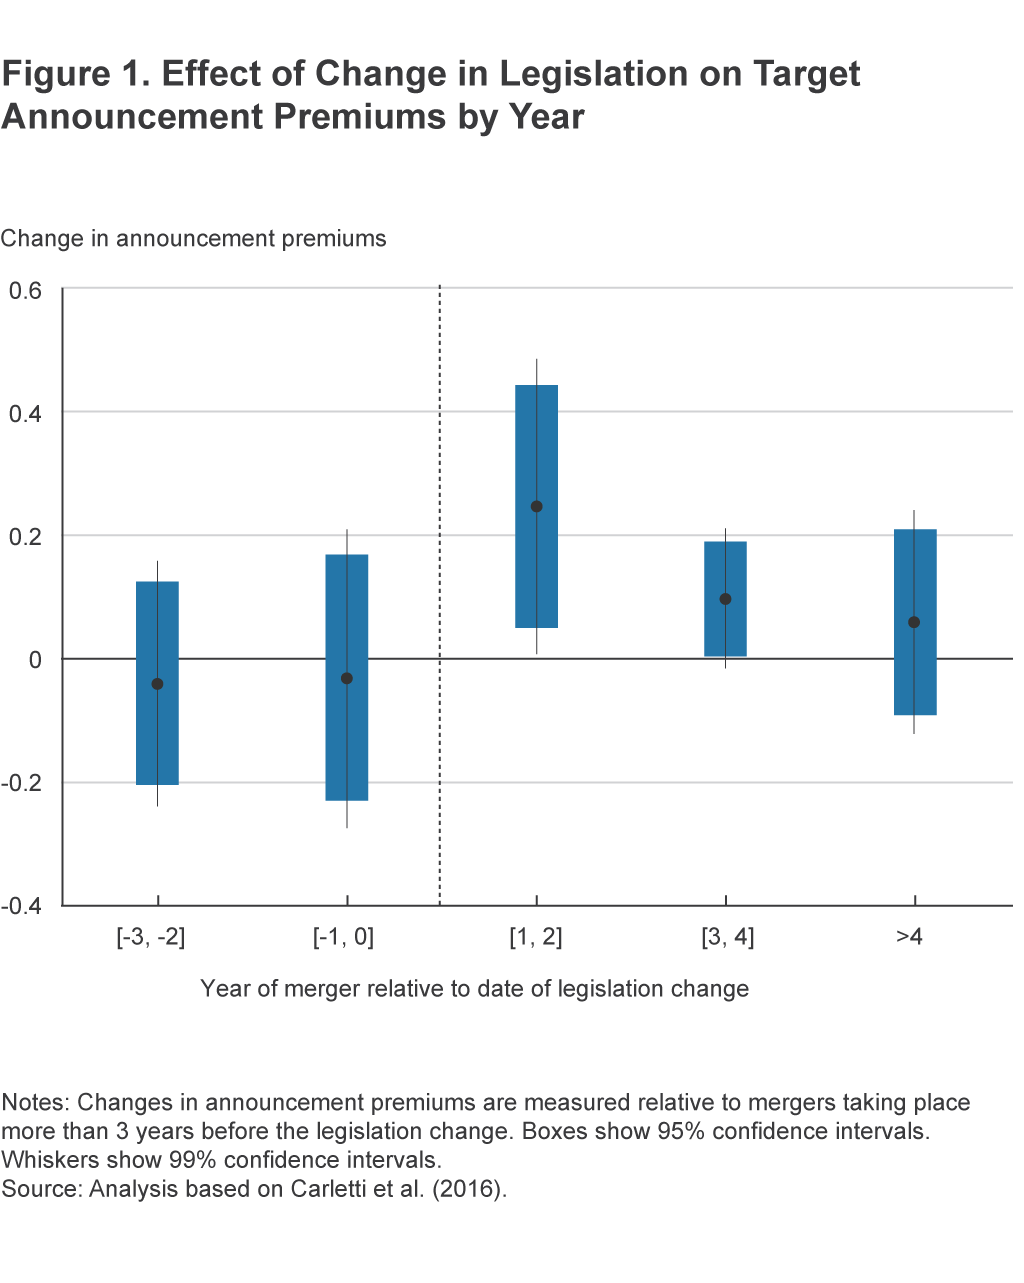 Figure 1. Effect of Change in Legislation on Target Announcement Premiums by Year